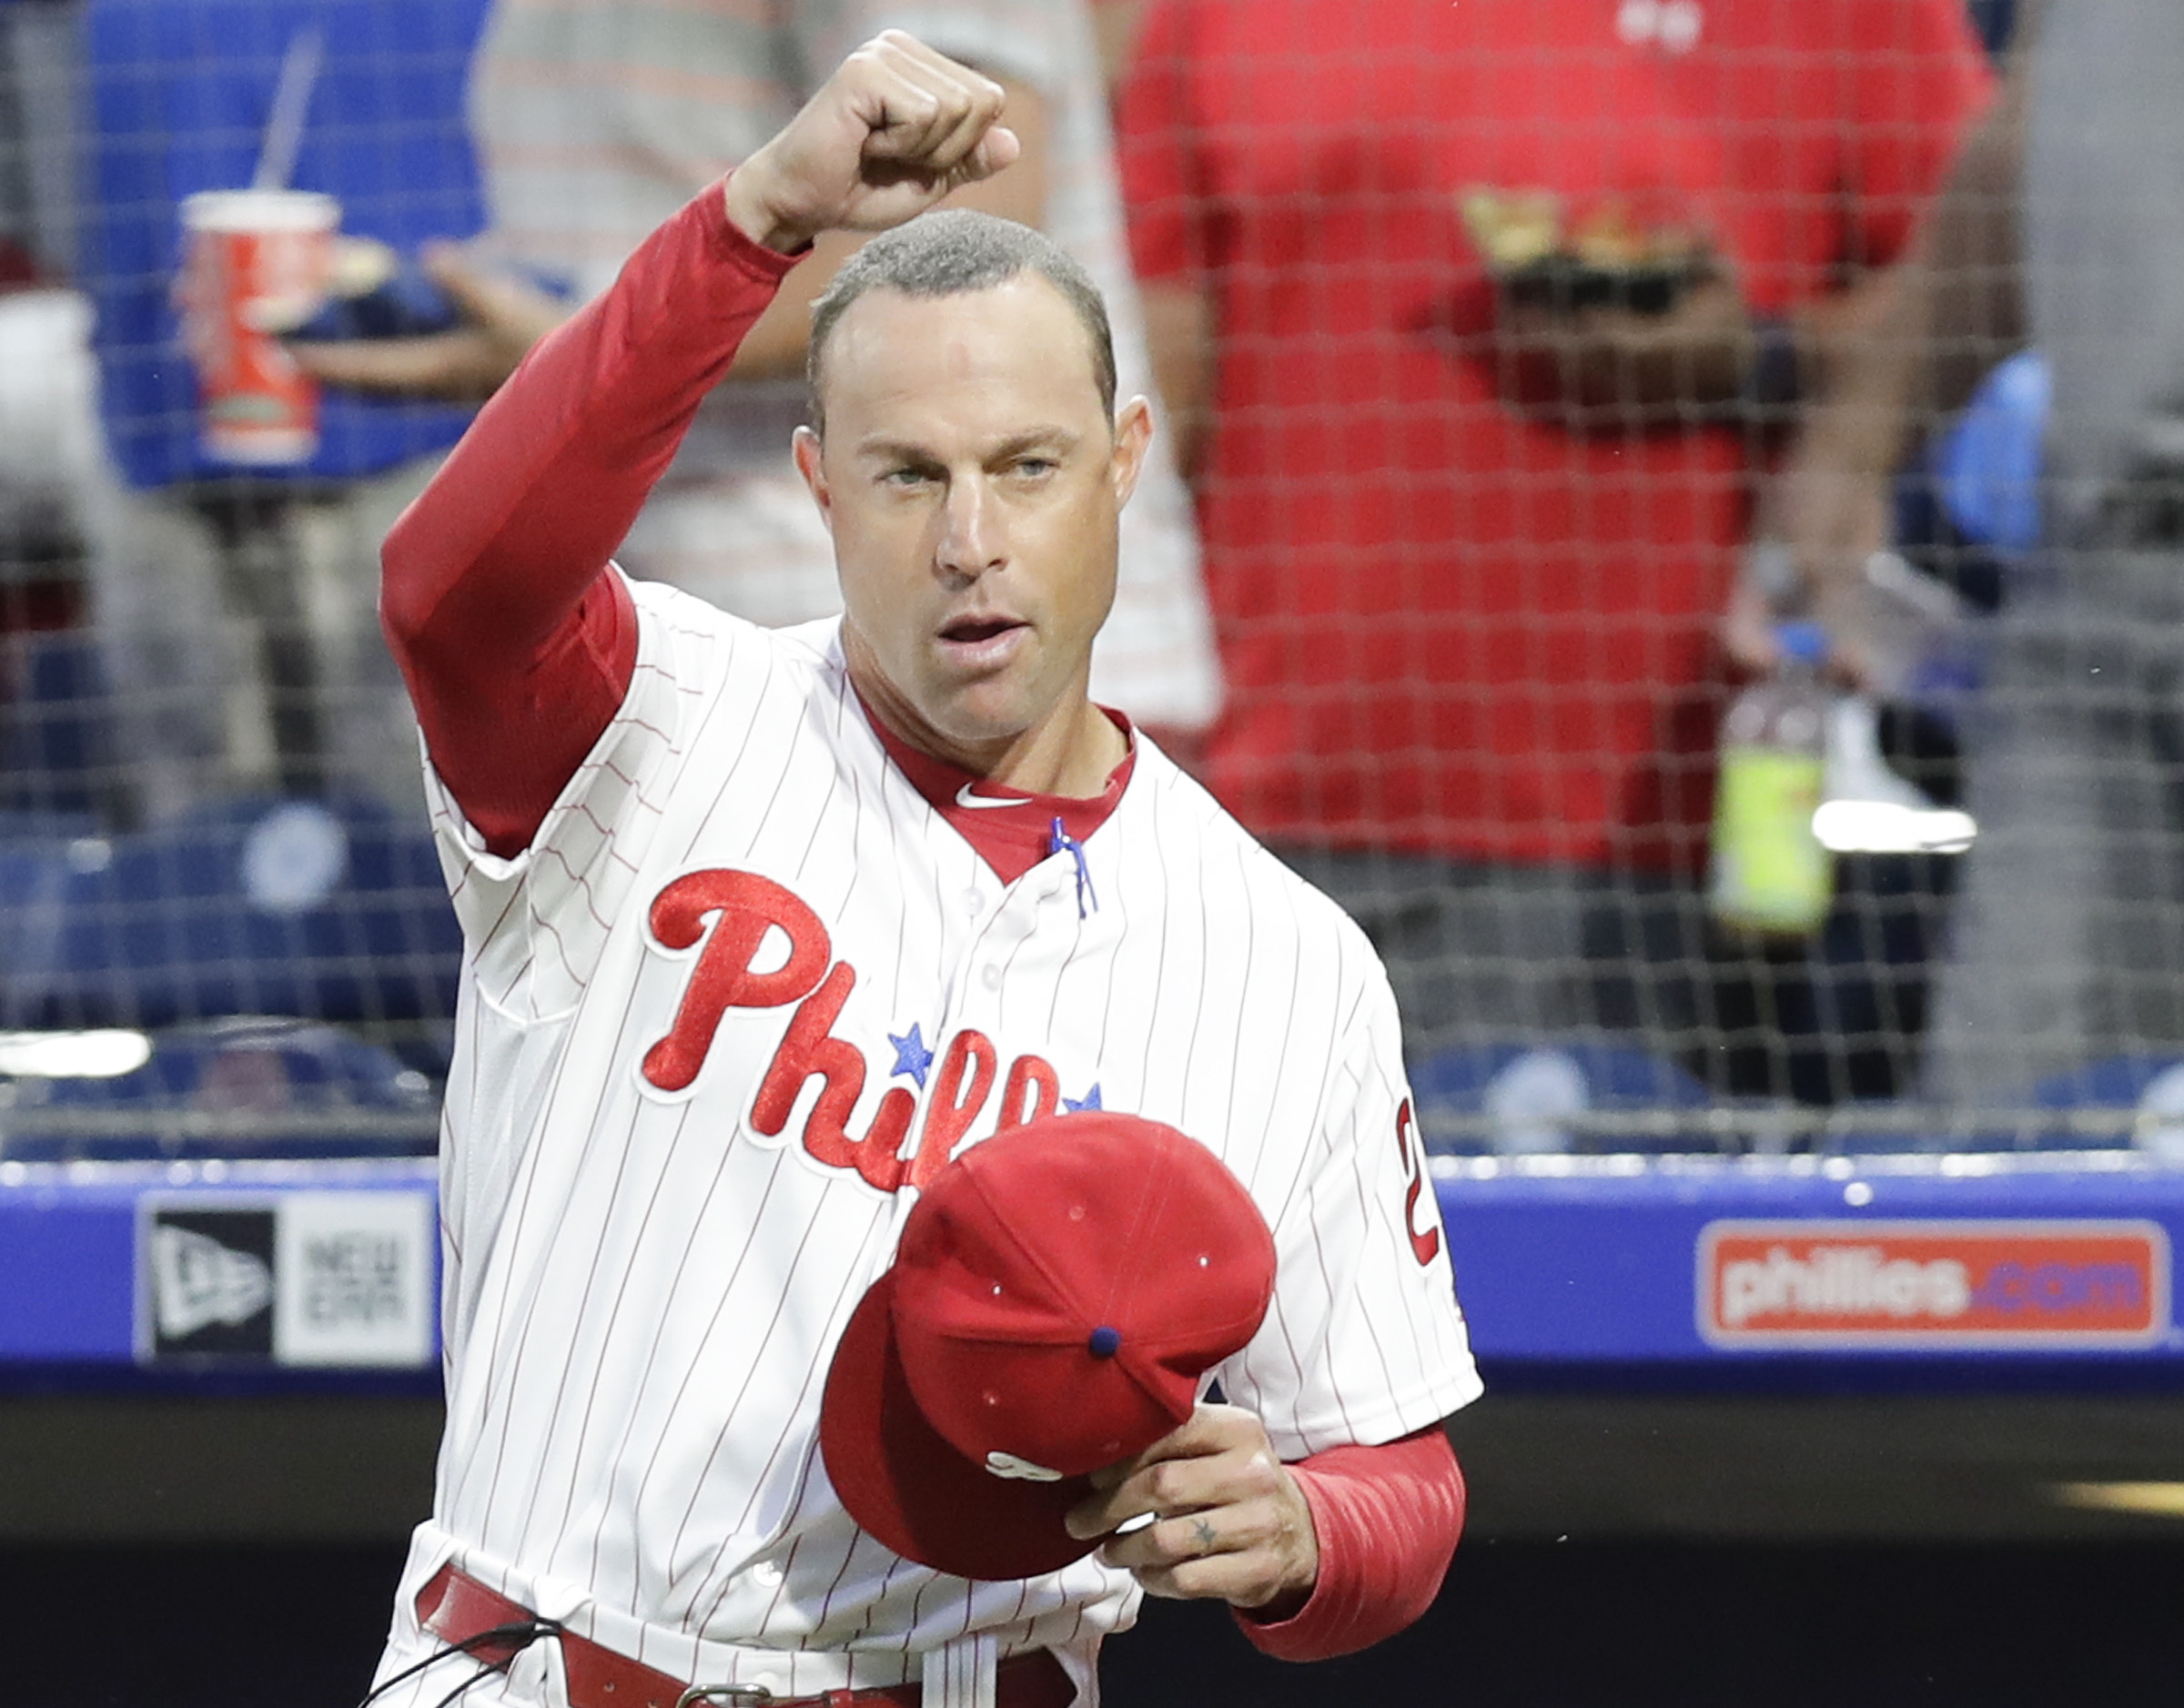 Despite a historic collapse over the final two months of the season, manager Gabe Kapler believes strongly in the Phillies´ process and vision for what a successful organization looks like in 2018.